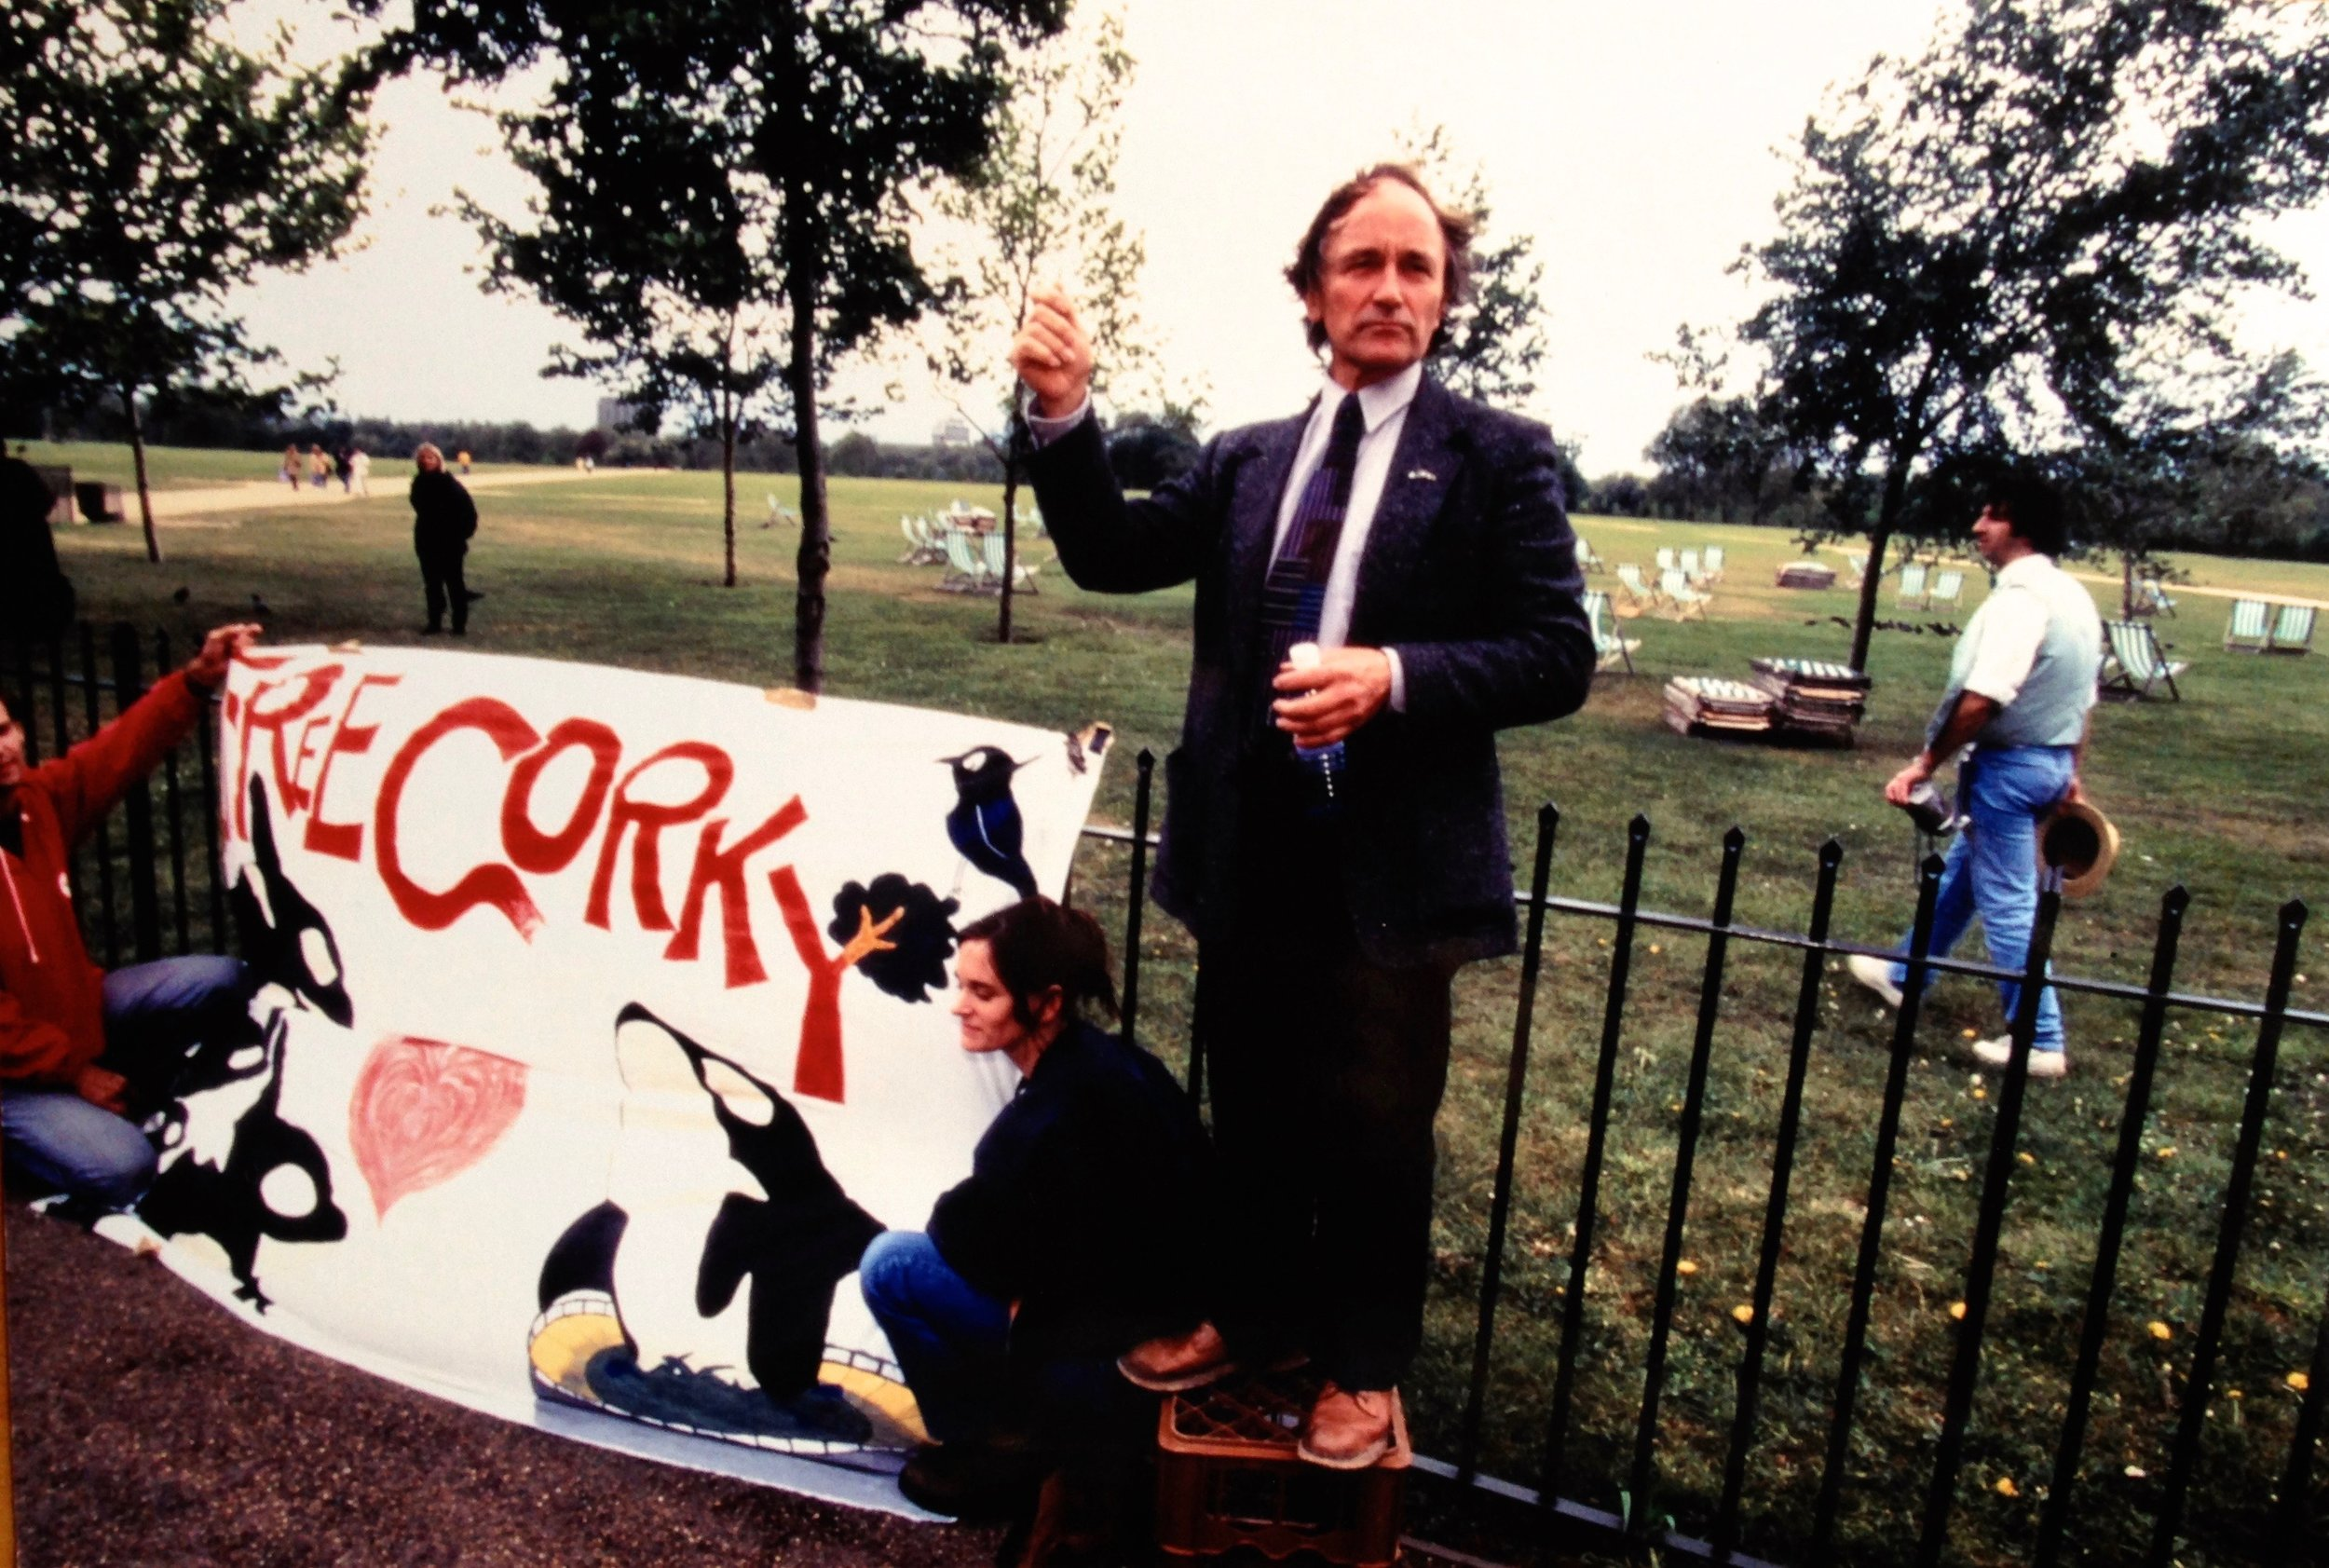 Dr. Paul Spong with the Corky Banner in London, England in 1997.